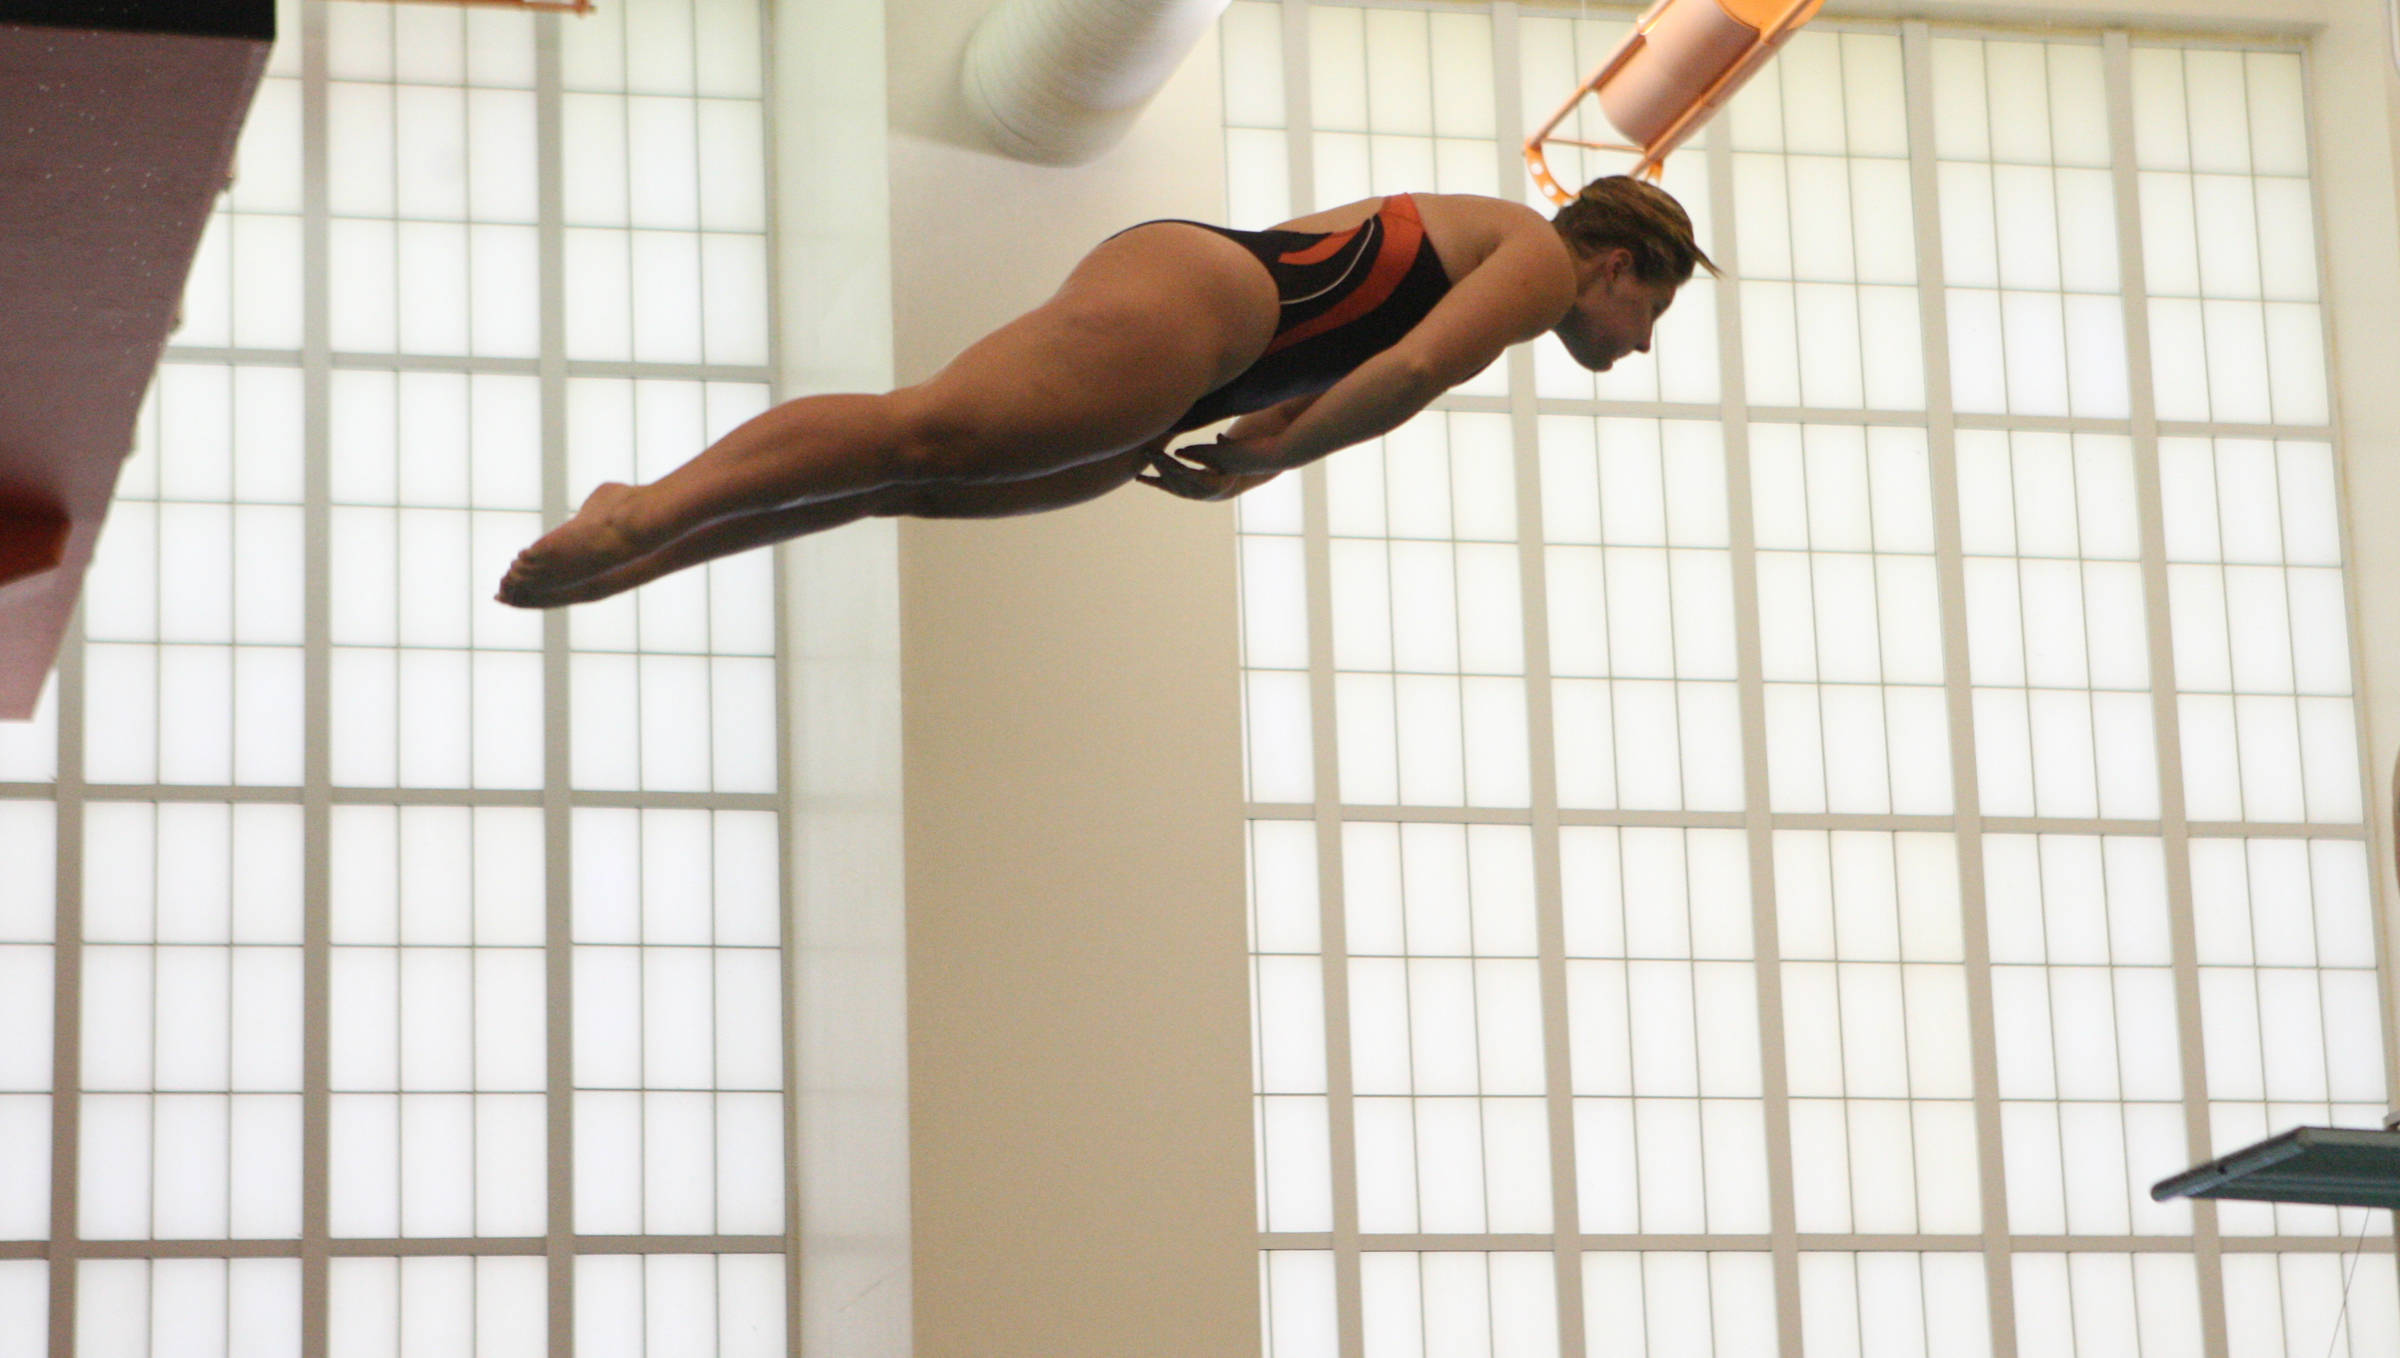 Diving Exhibition Gives Fans First Taste of New Program